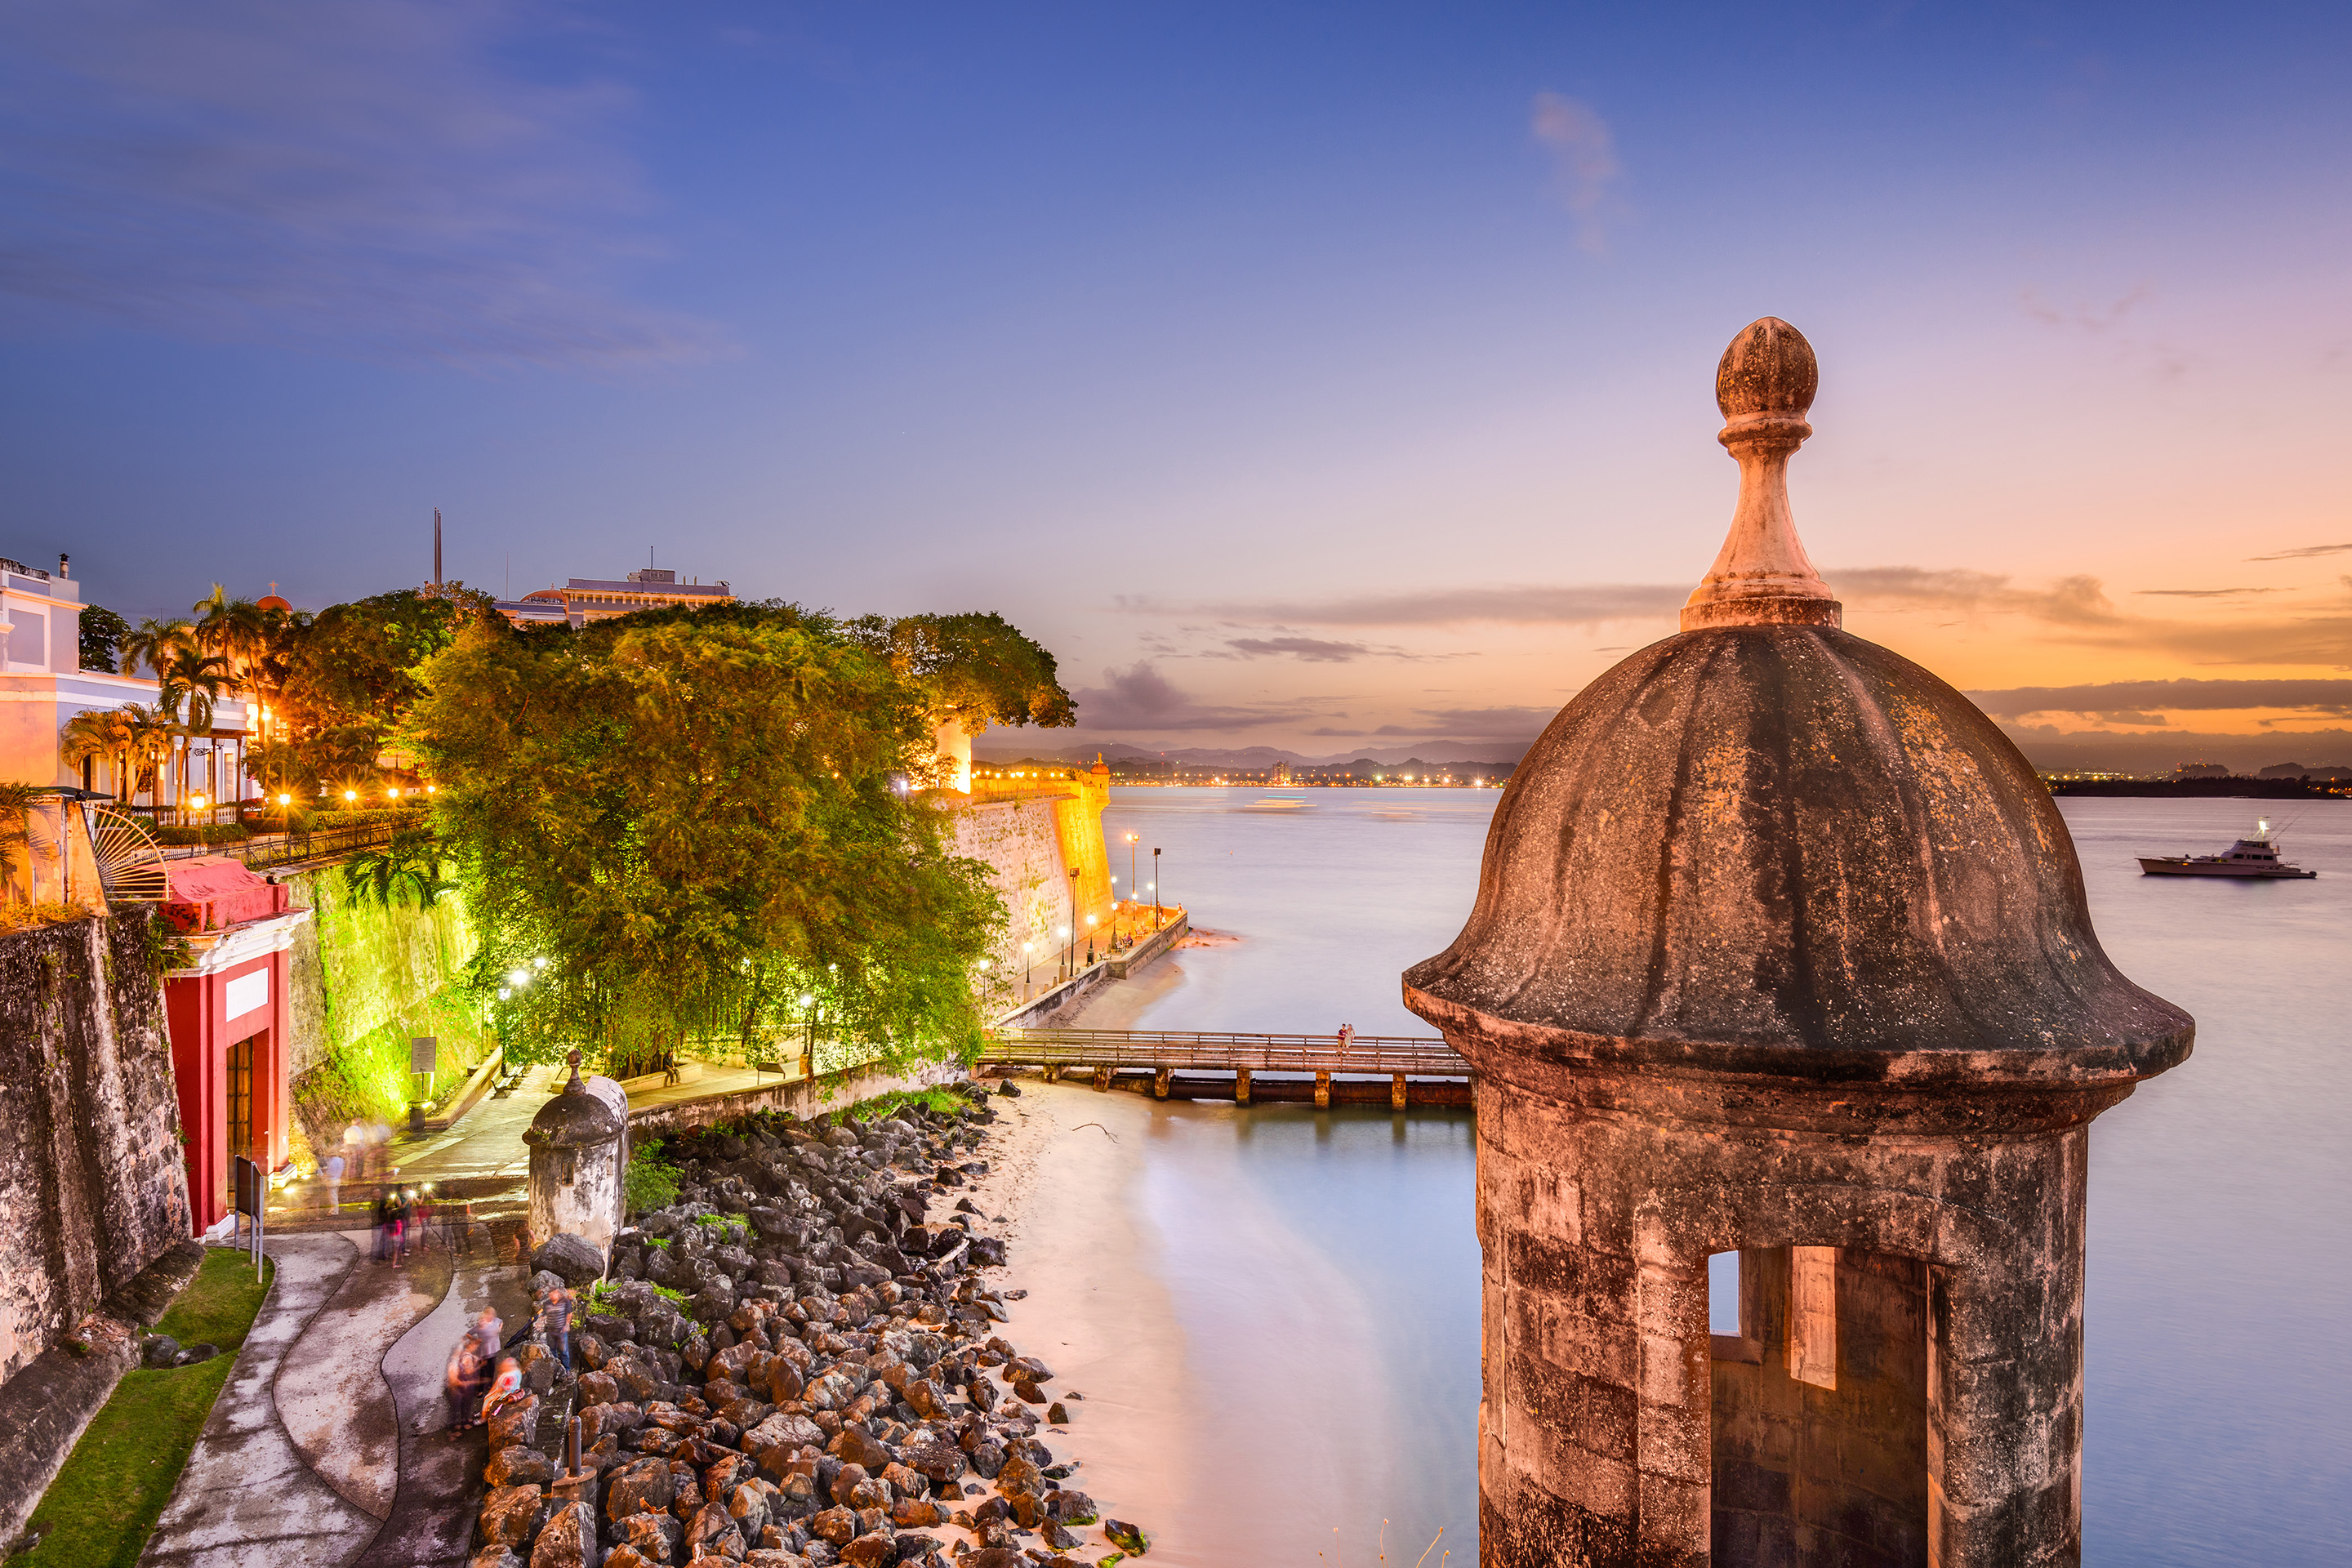 The morro fort in San Juan, Puerto Rico during sunset